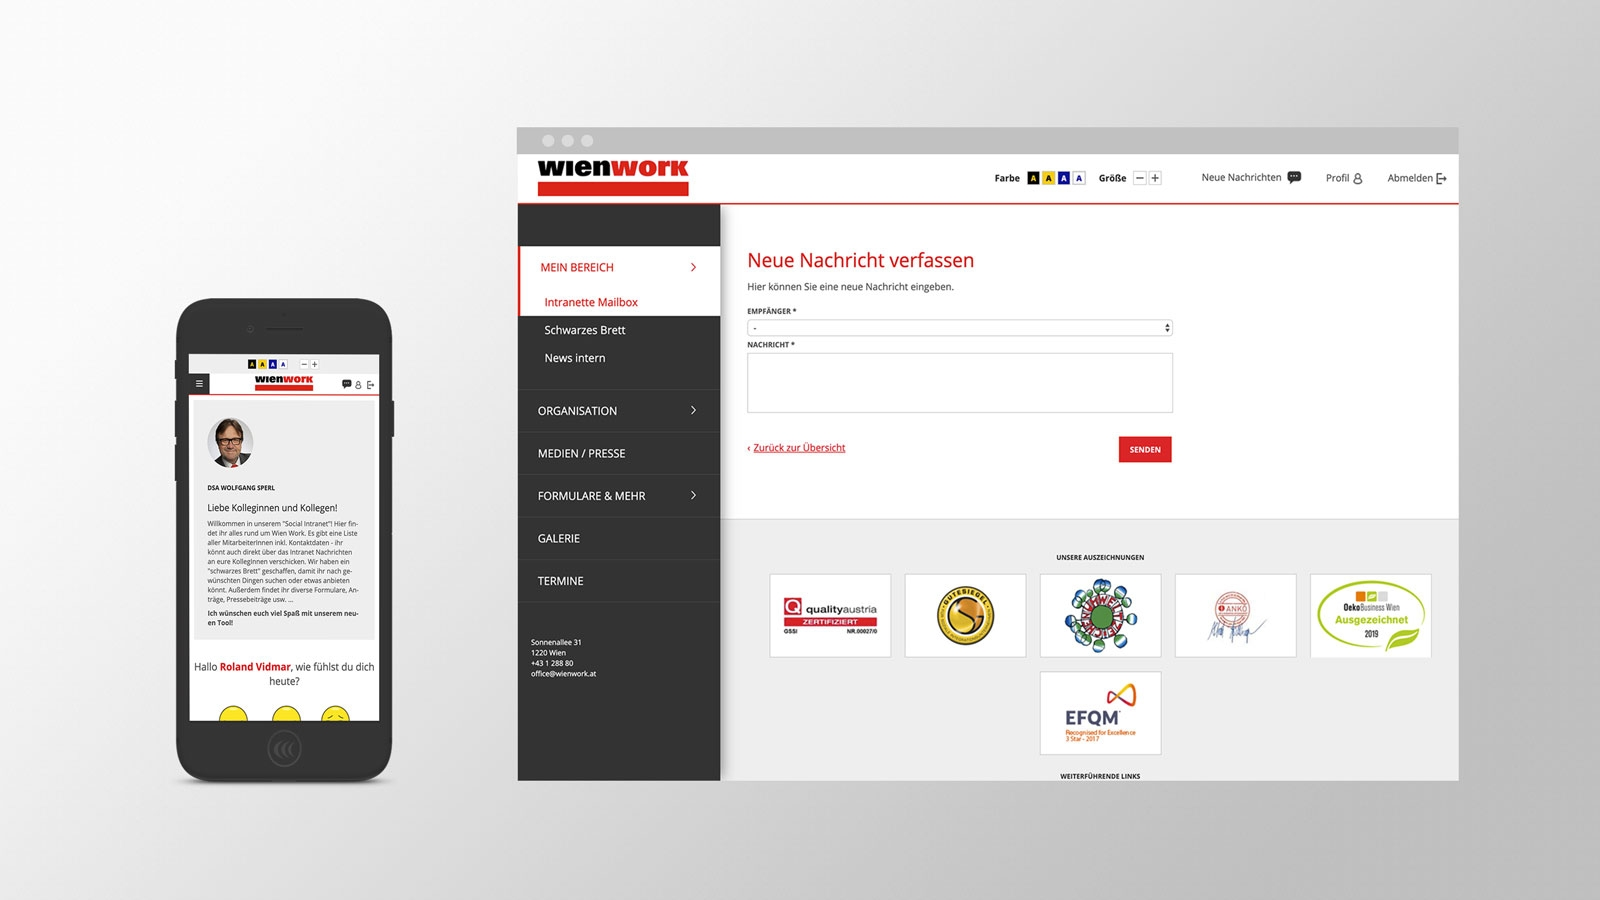 Wien Work Intranet | intranet.wienwork.at | 2018 (Responsive Phone Desktop) © echonet communication